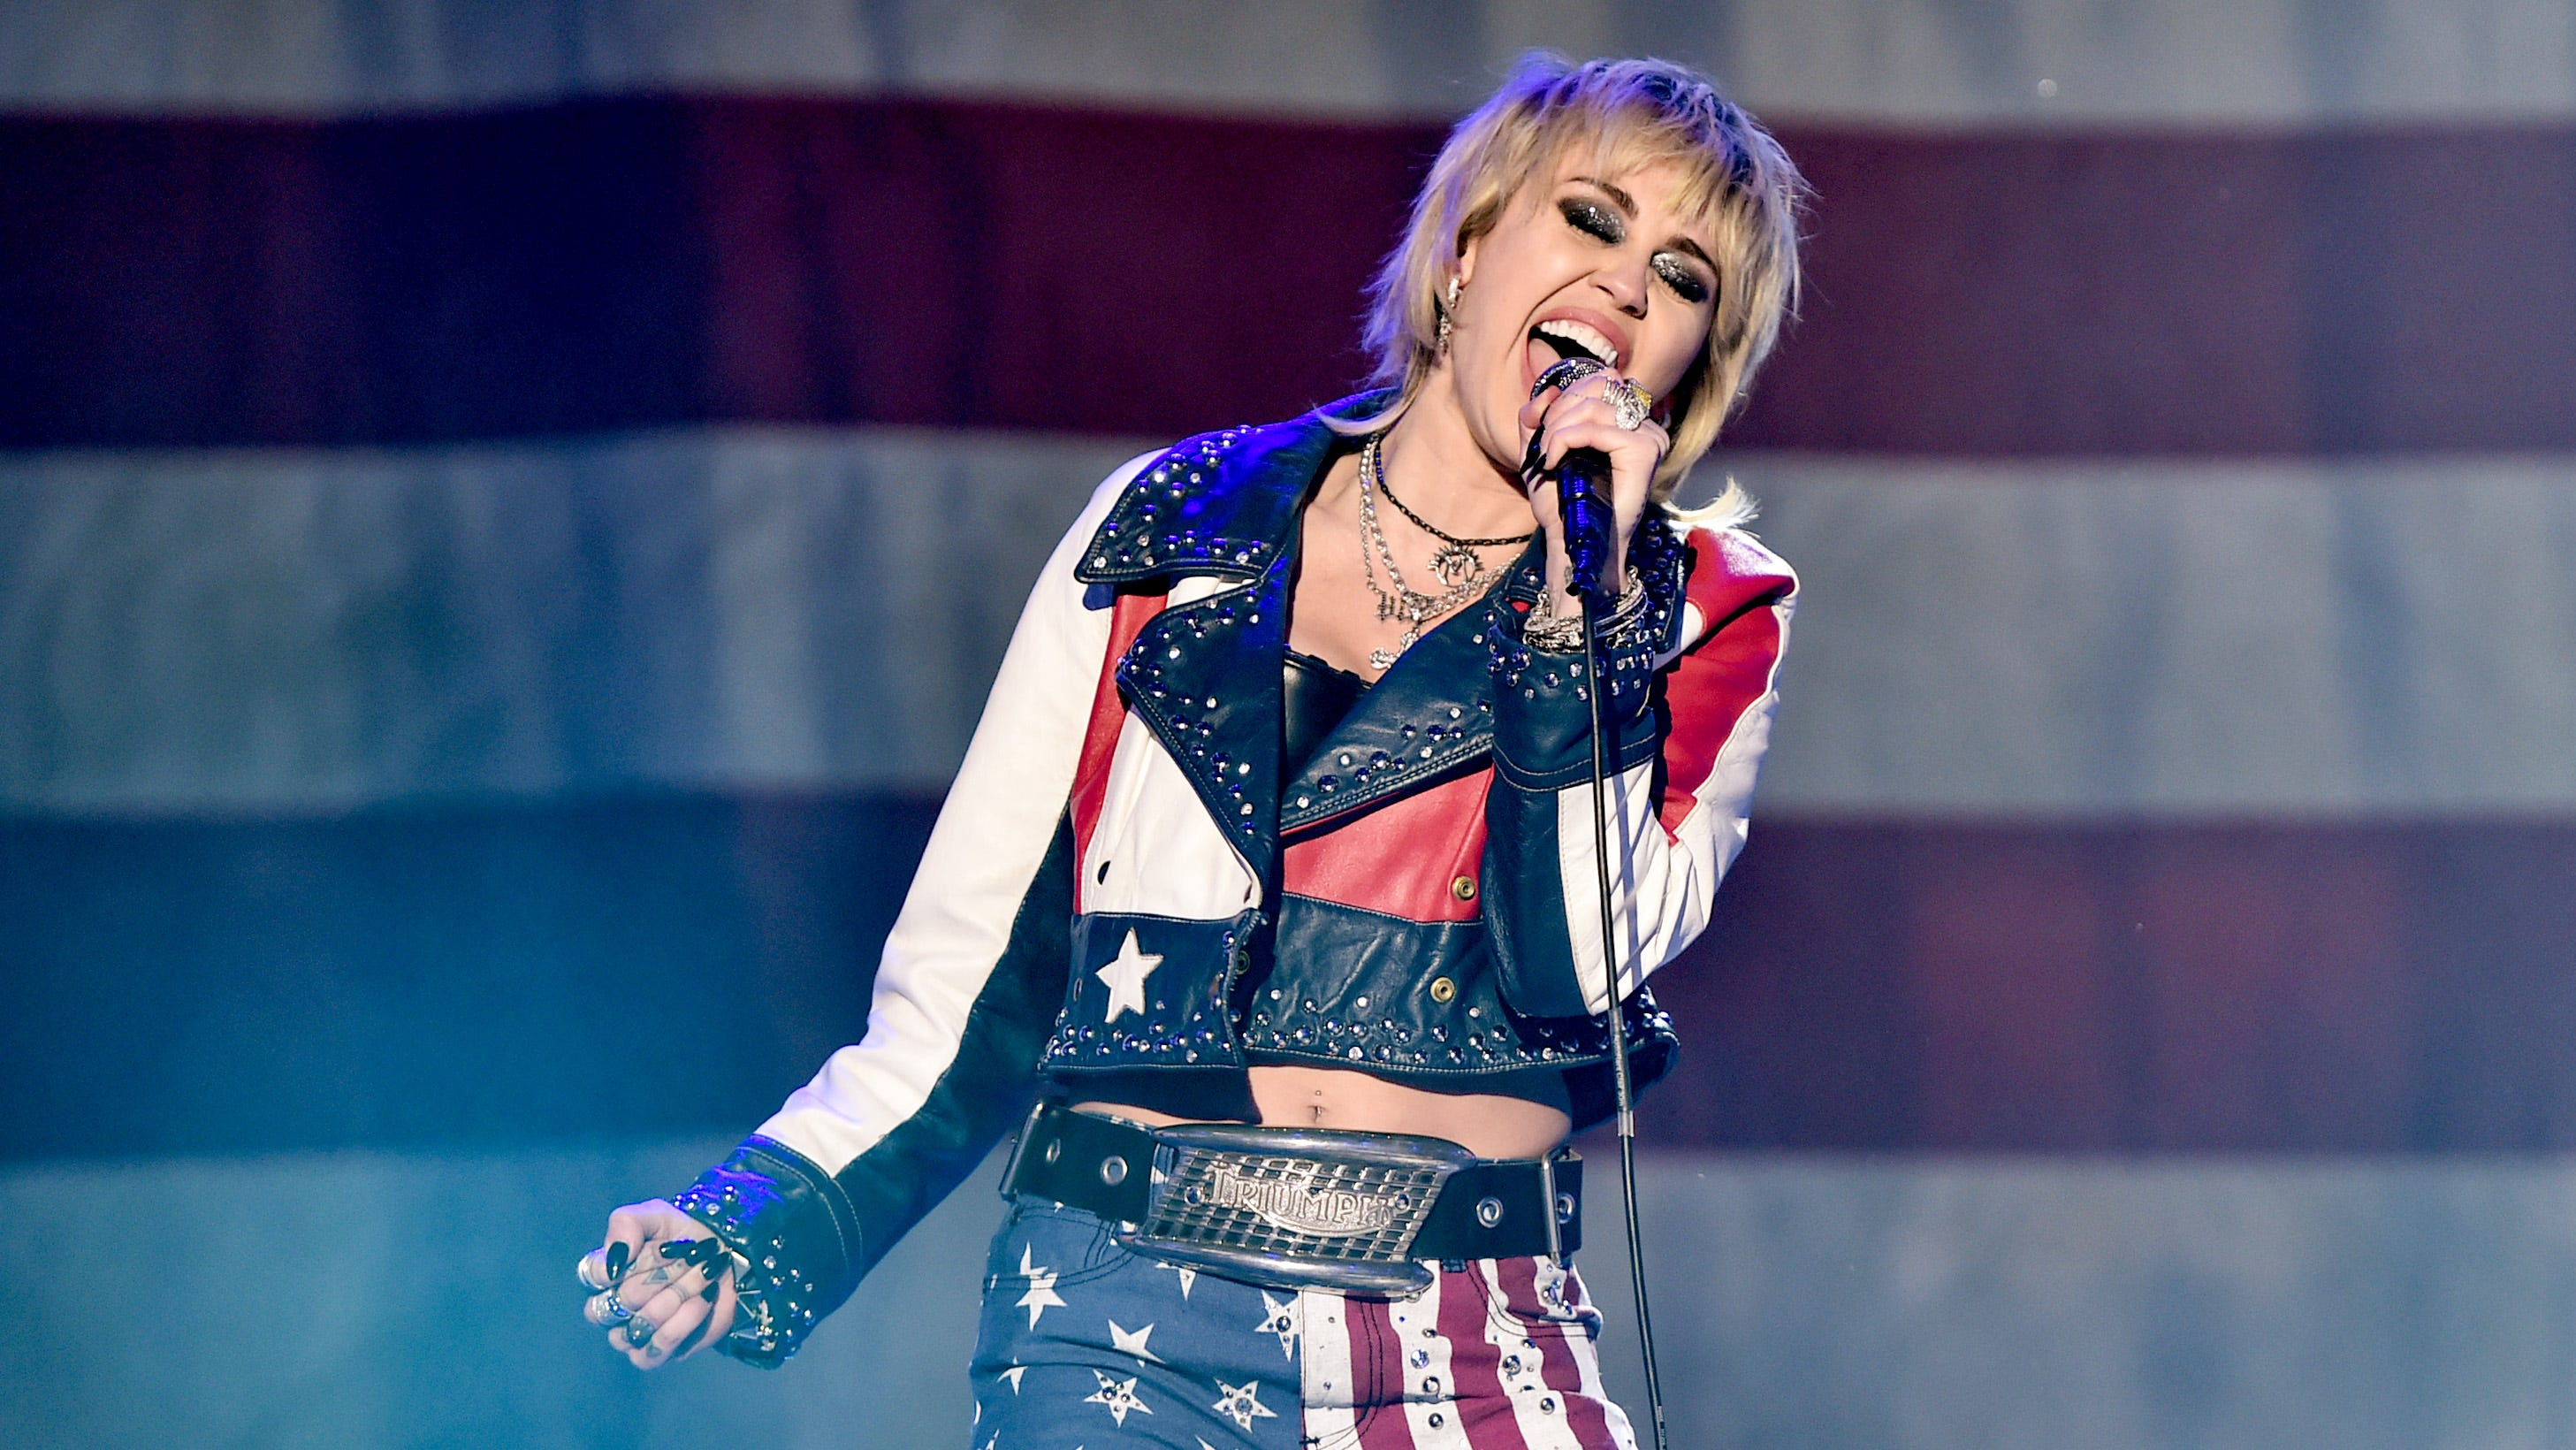 'SNL': Miley Cyrus covers Dolly Parton in moving Mother's Day opening tribute